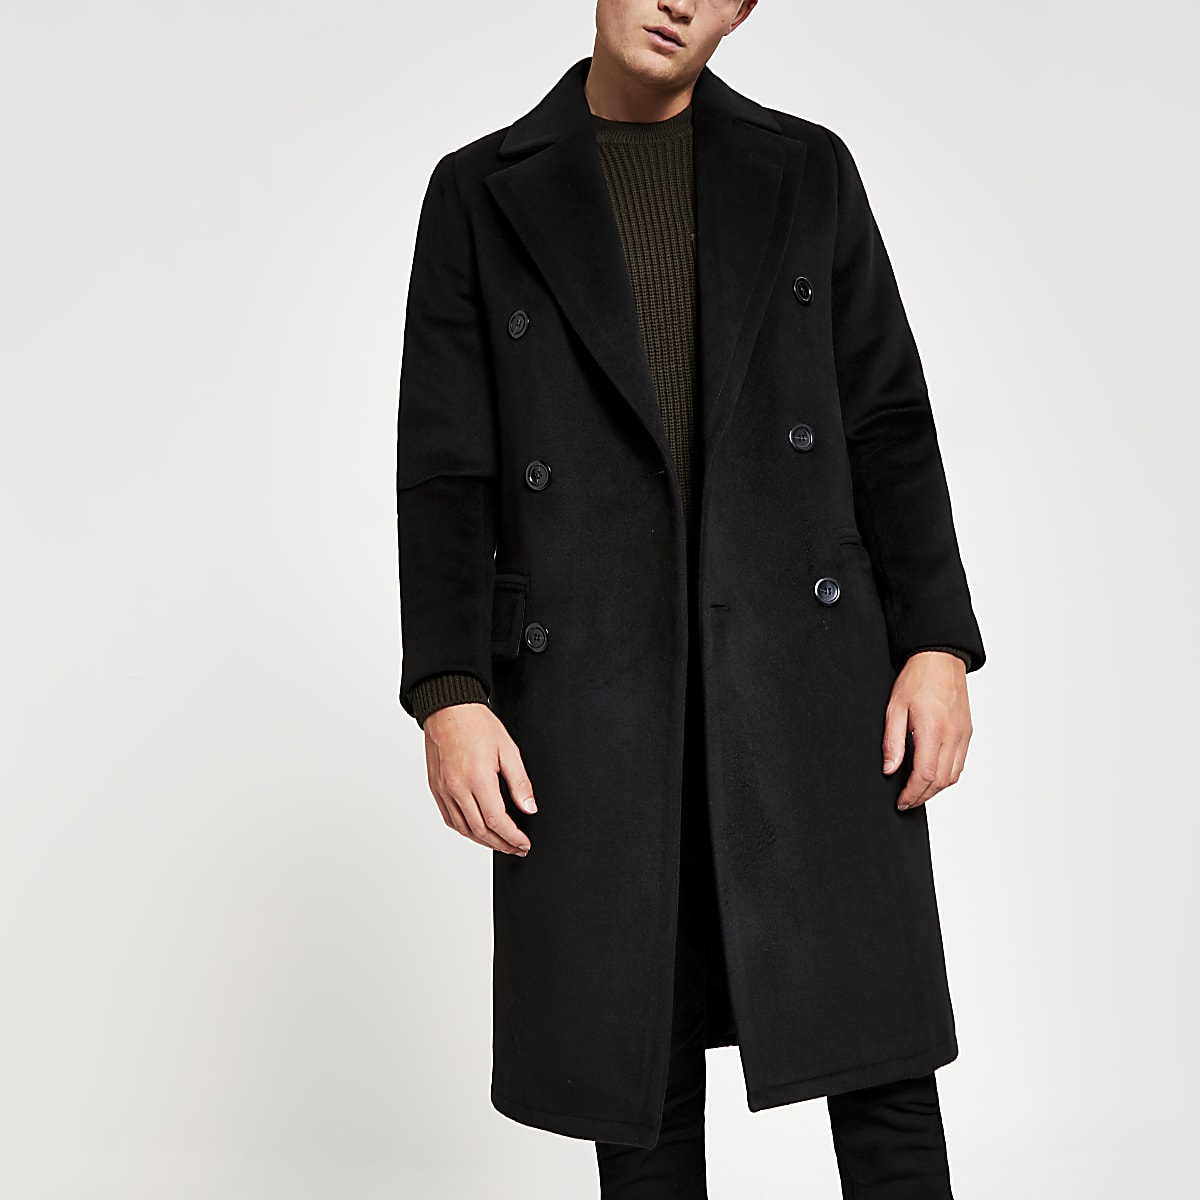 Black double breasted overcoat